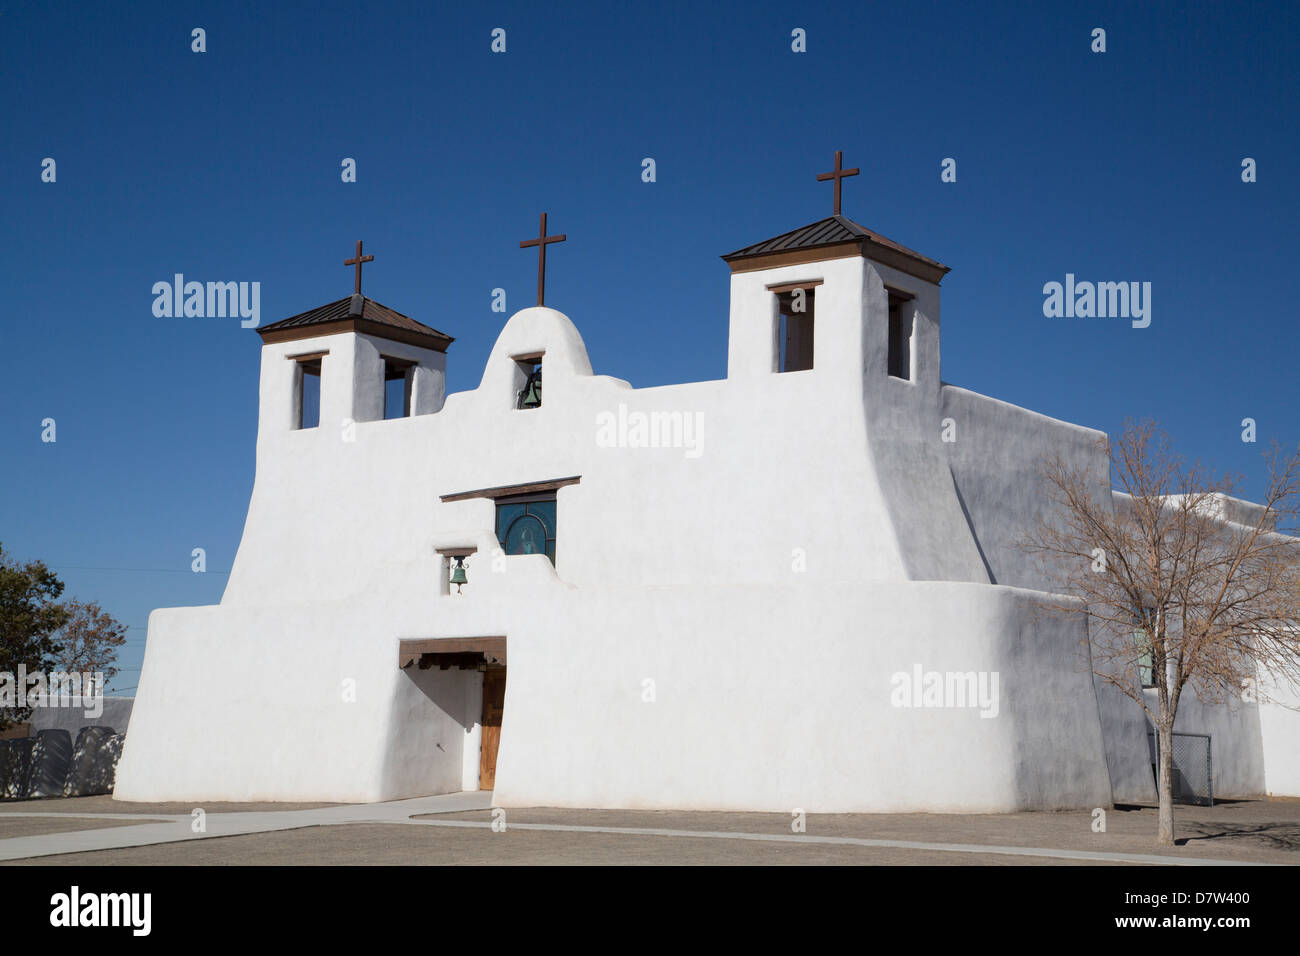 St. Augustine Church, Isleta Pueblo, New Mexico, USA - Stock Image